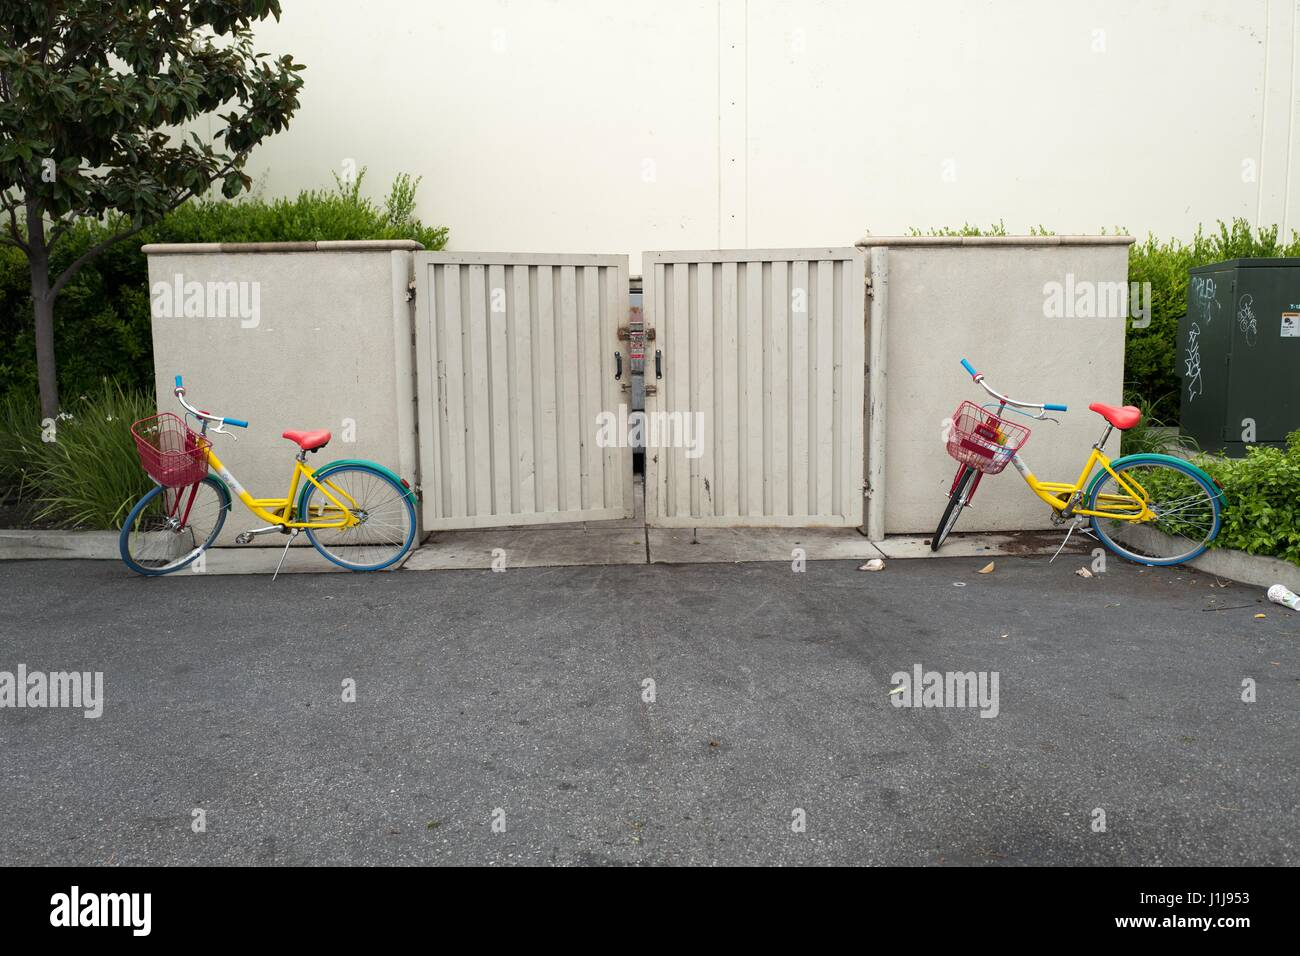 Two Google bikes are haphazardly parked near a garbage dumpster near the Googleplex, the Silicon Valley headquarters - Stock Image